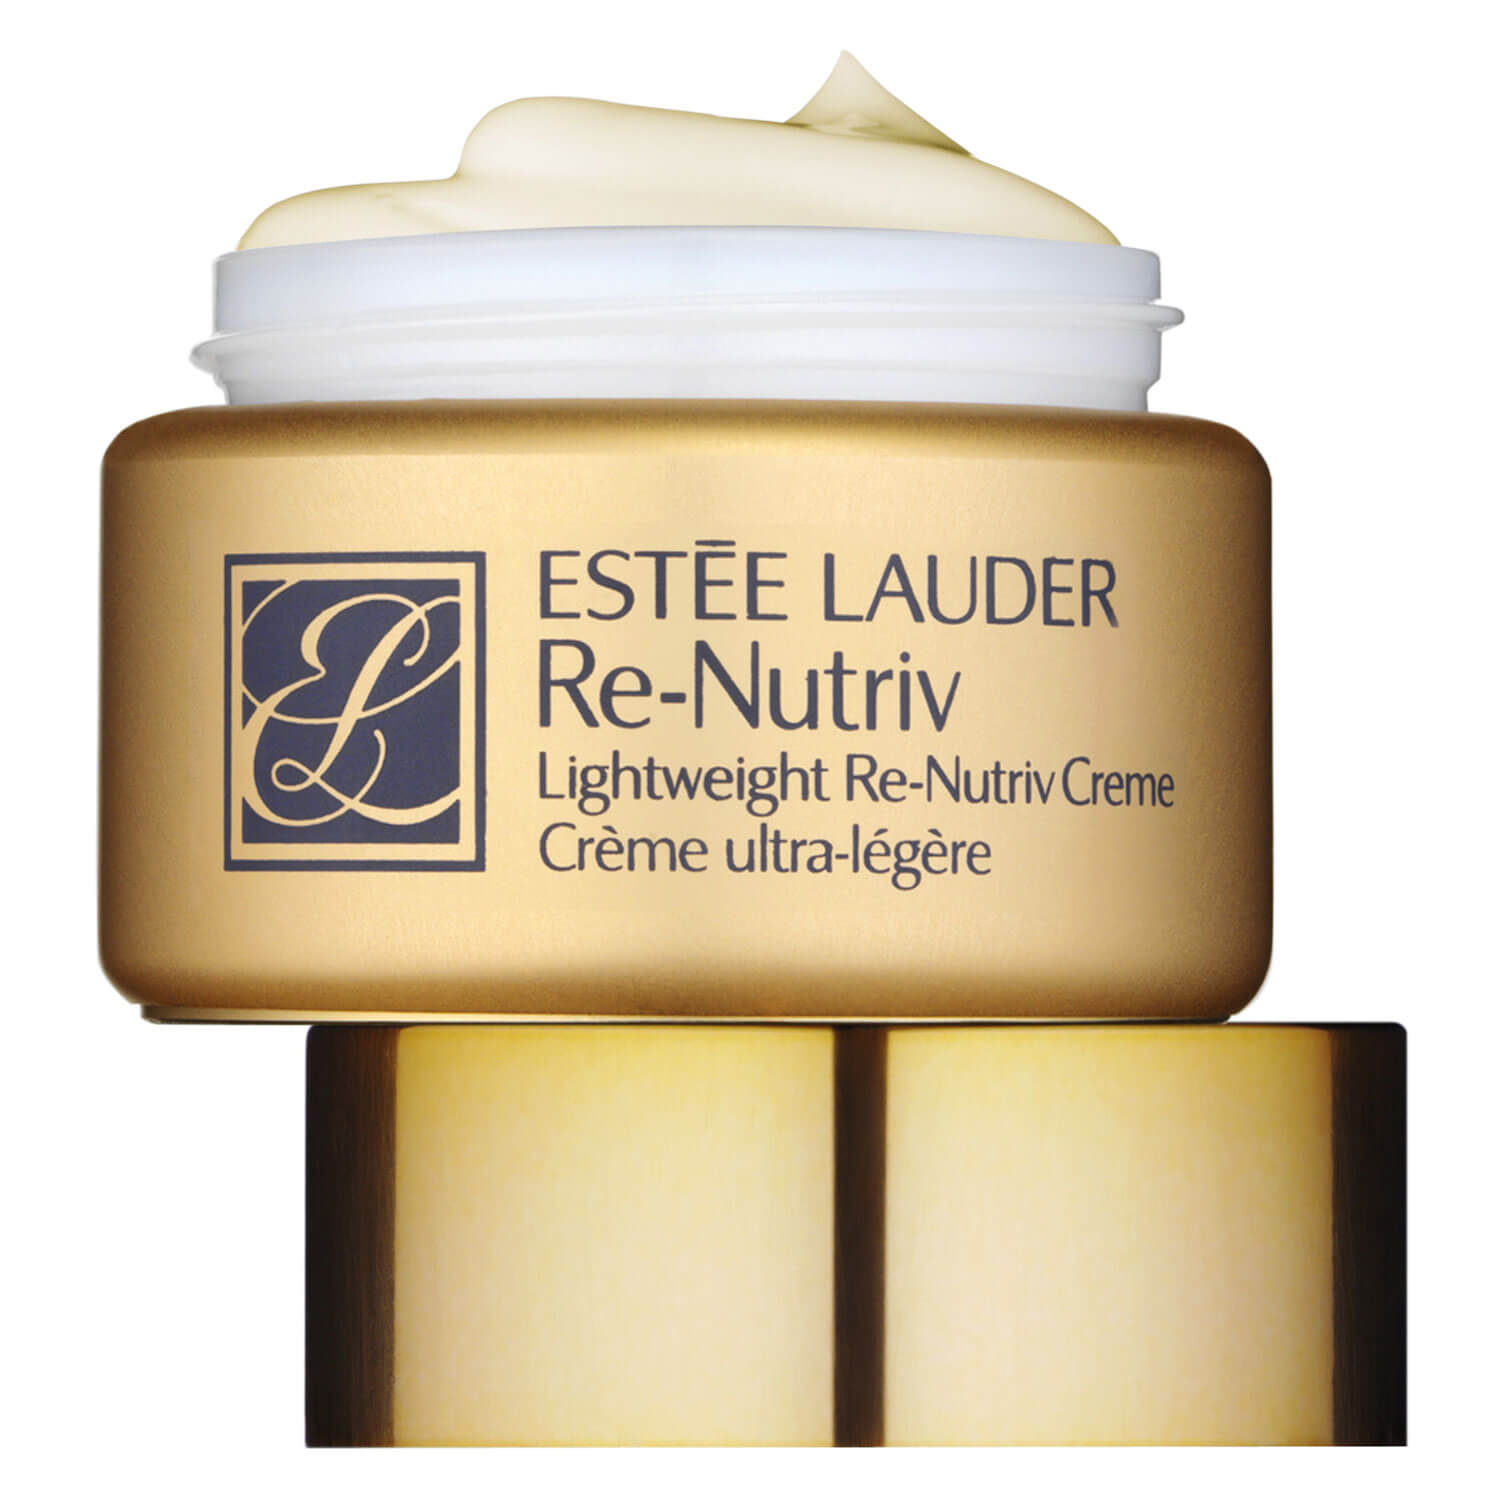 Re-Nutriv - Lightweight Creme